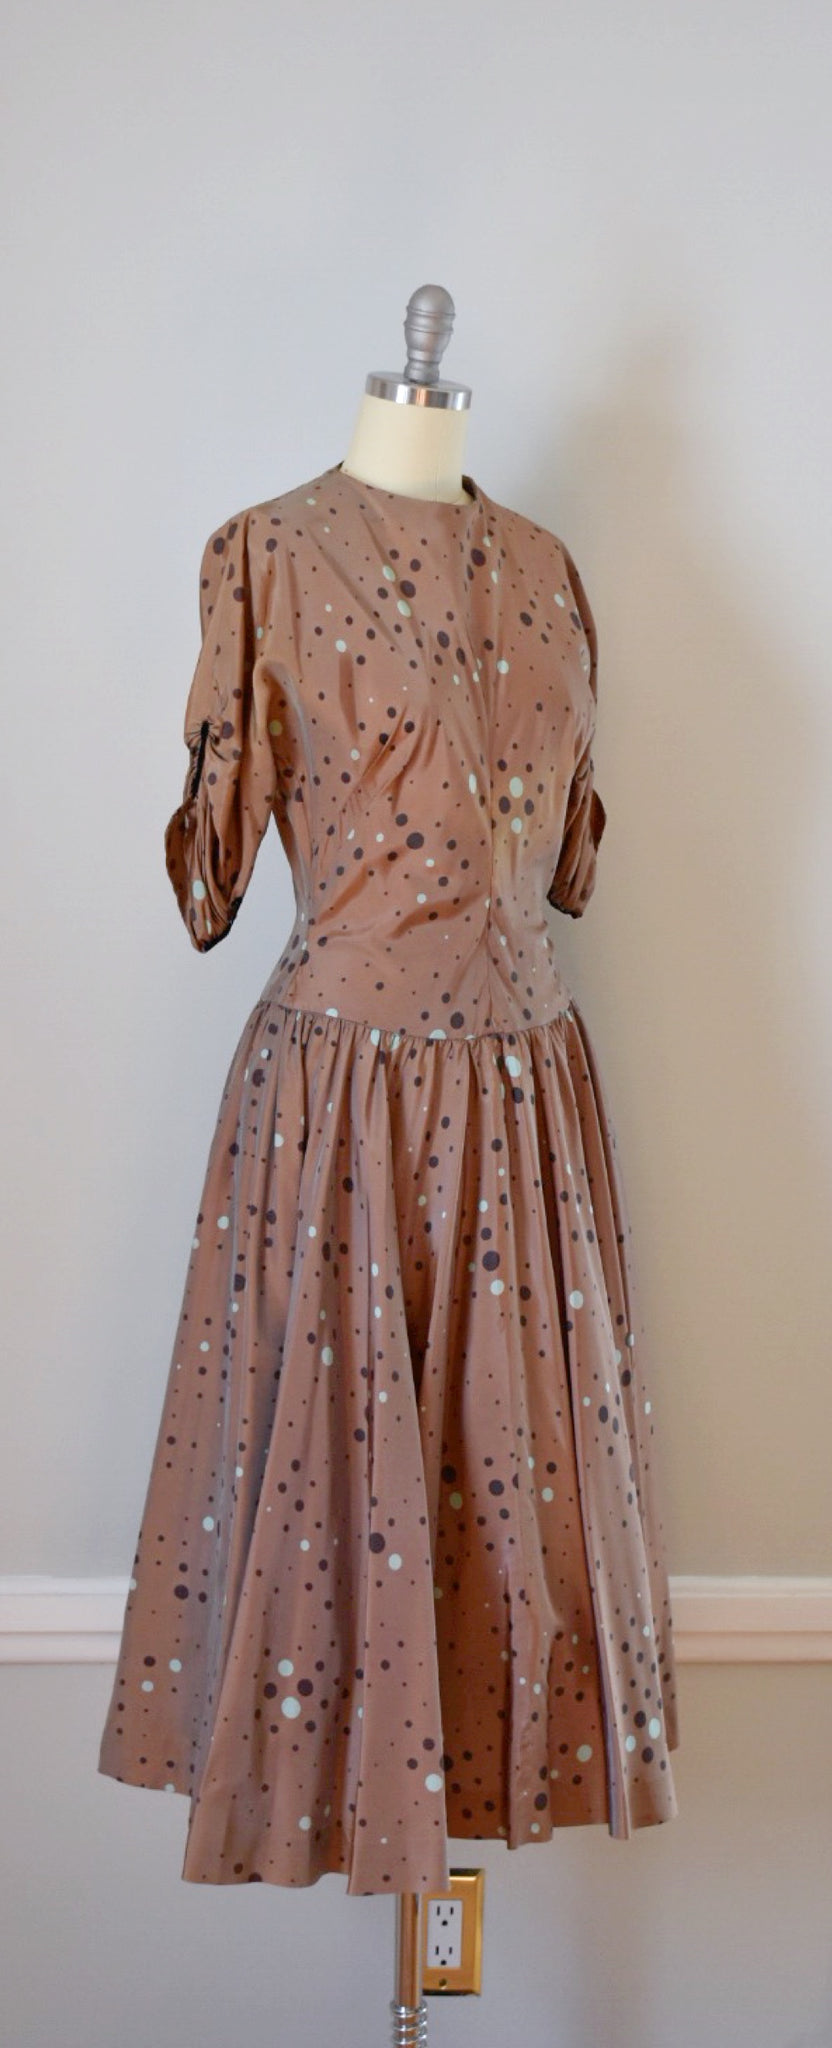 40s / 50s Vintage Sharkskin Novelty Print Dress